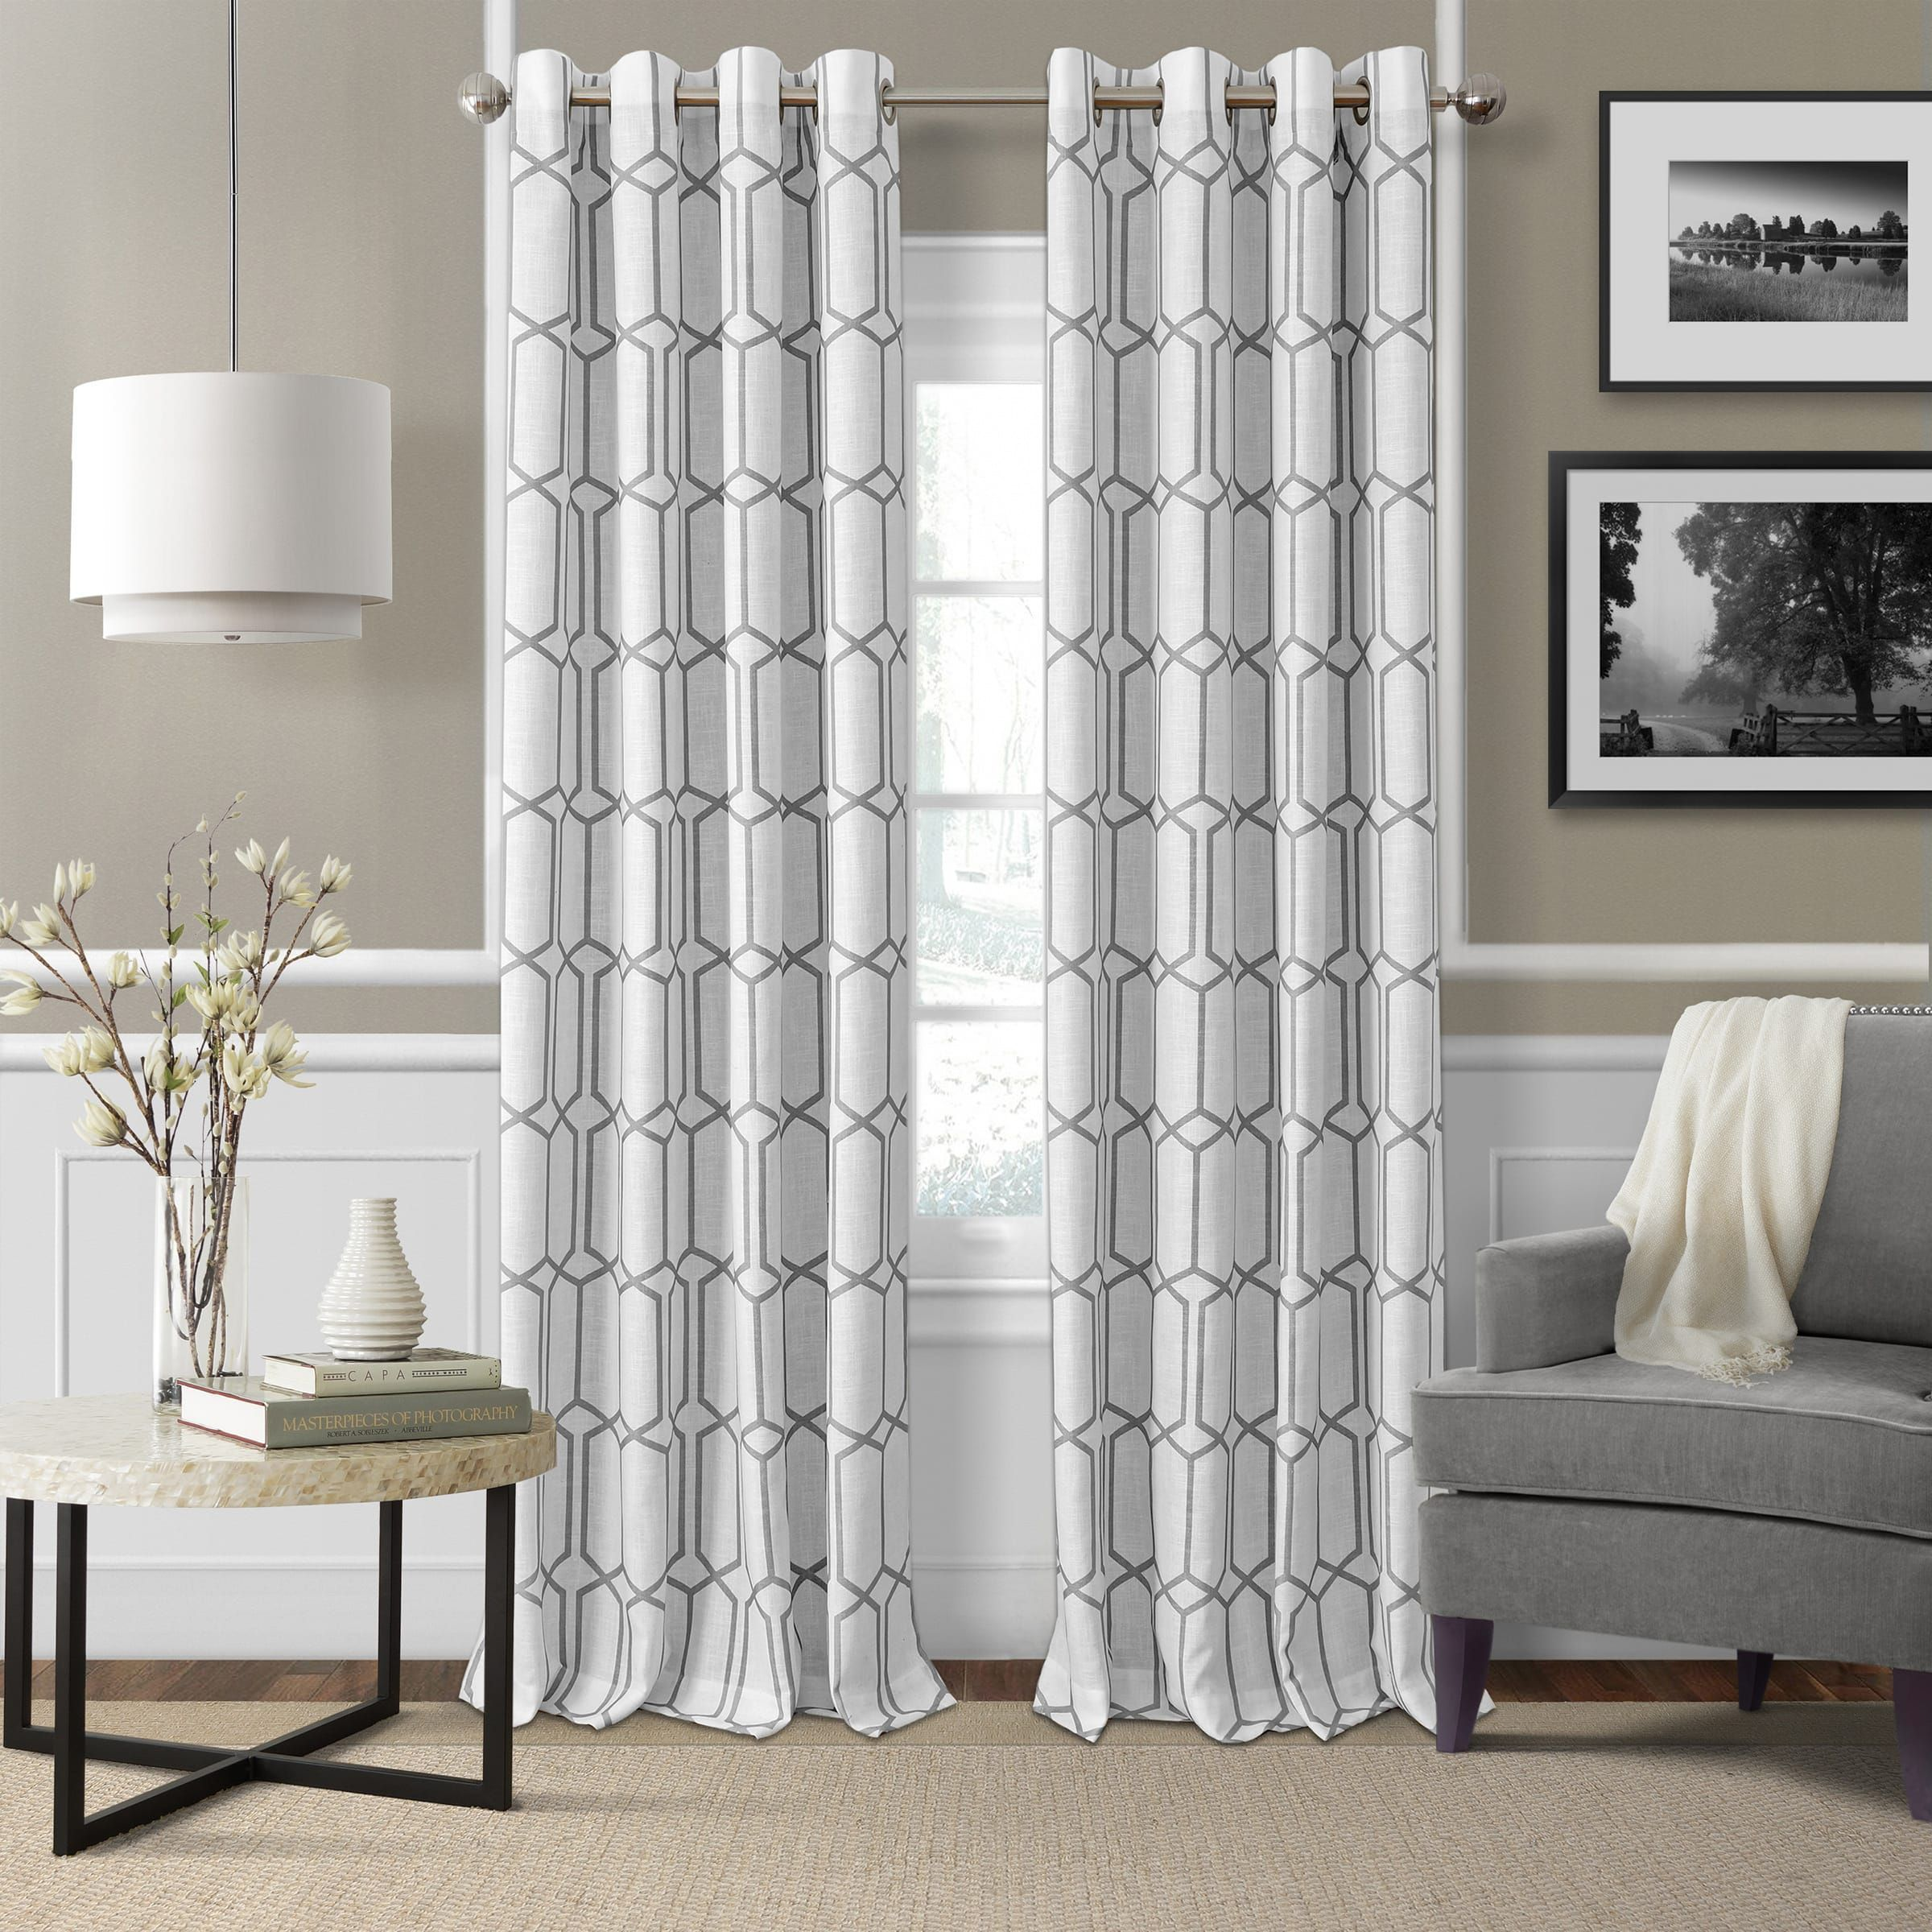 Elrene kaiden blackout curtain panel products pinterest products